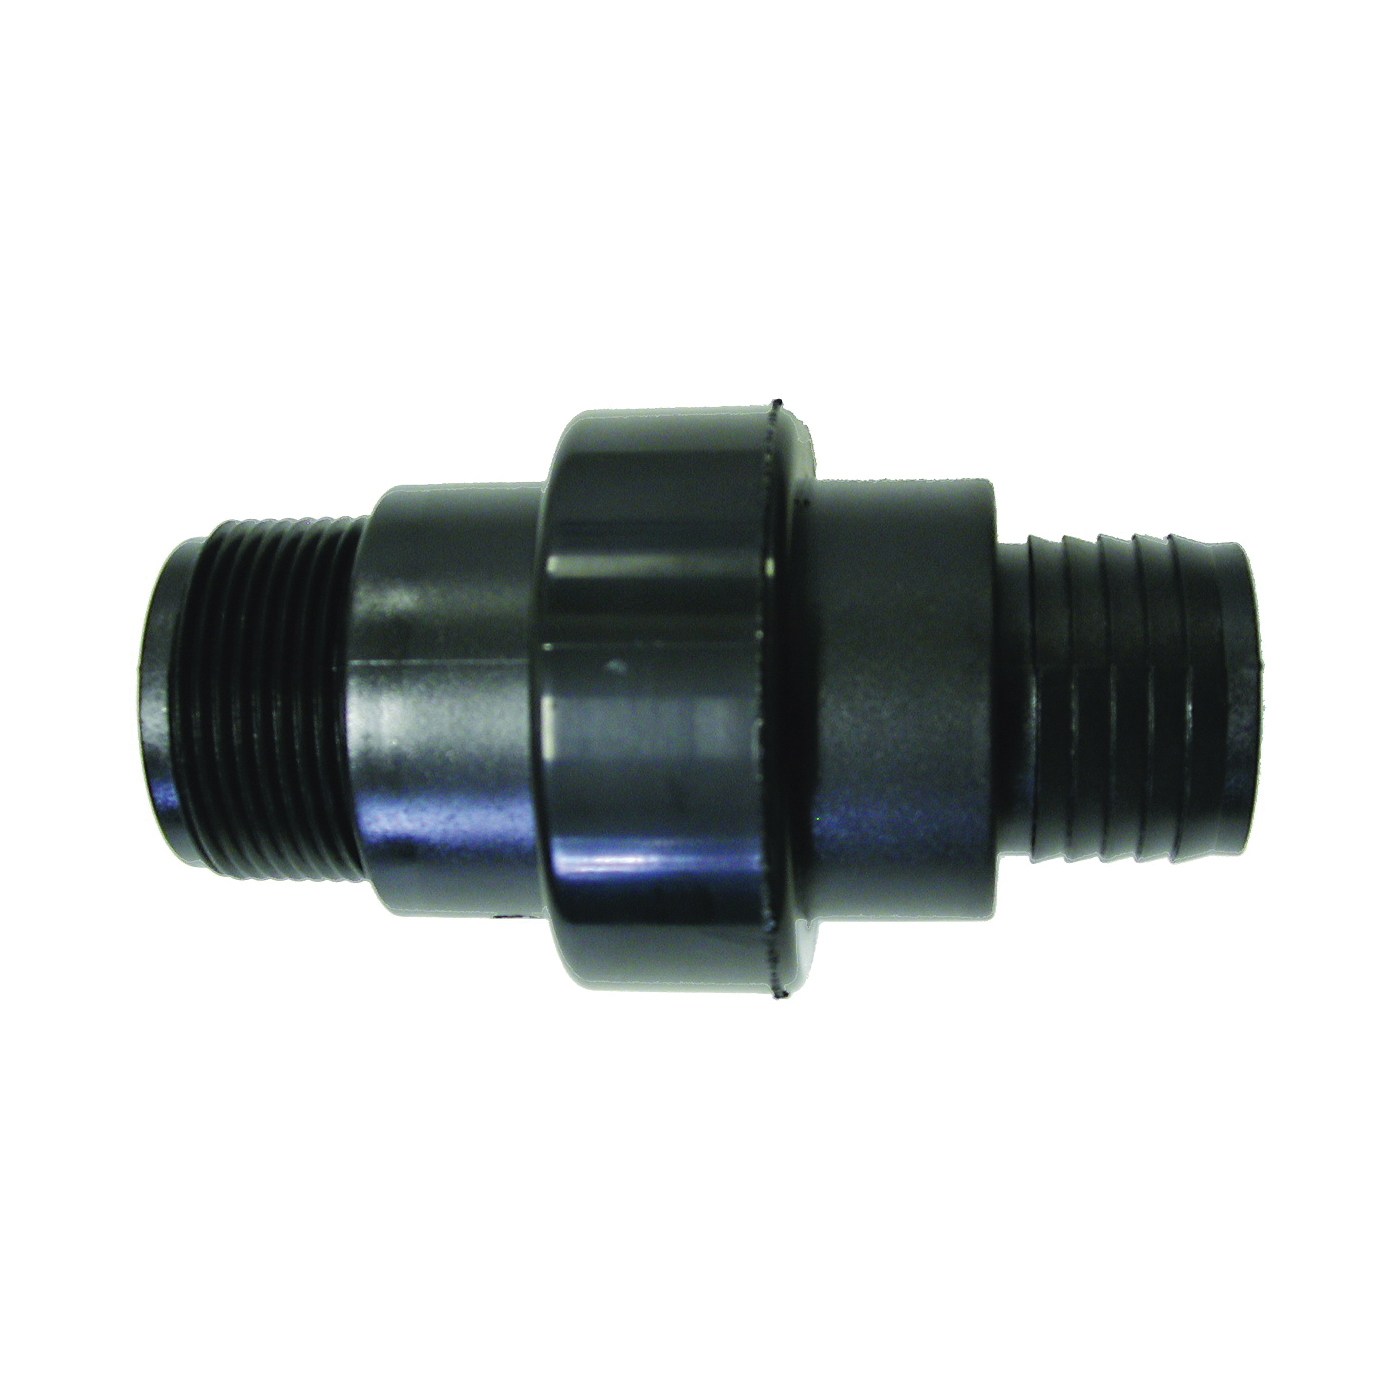 Picture of SUPERIOR PUMP 99509/SC150B Check Valve, 1-1/2 x 1-1/4 in, MPT x Barb, ABS Body